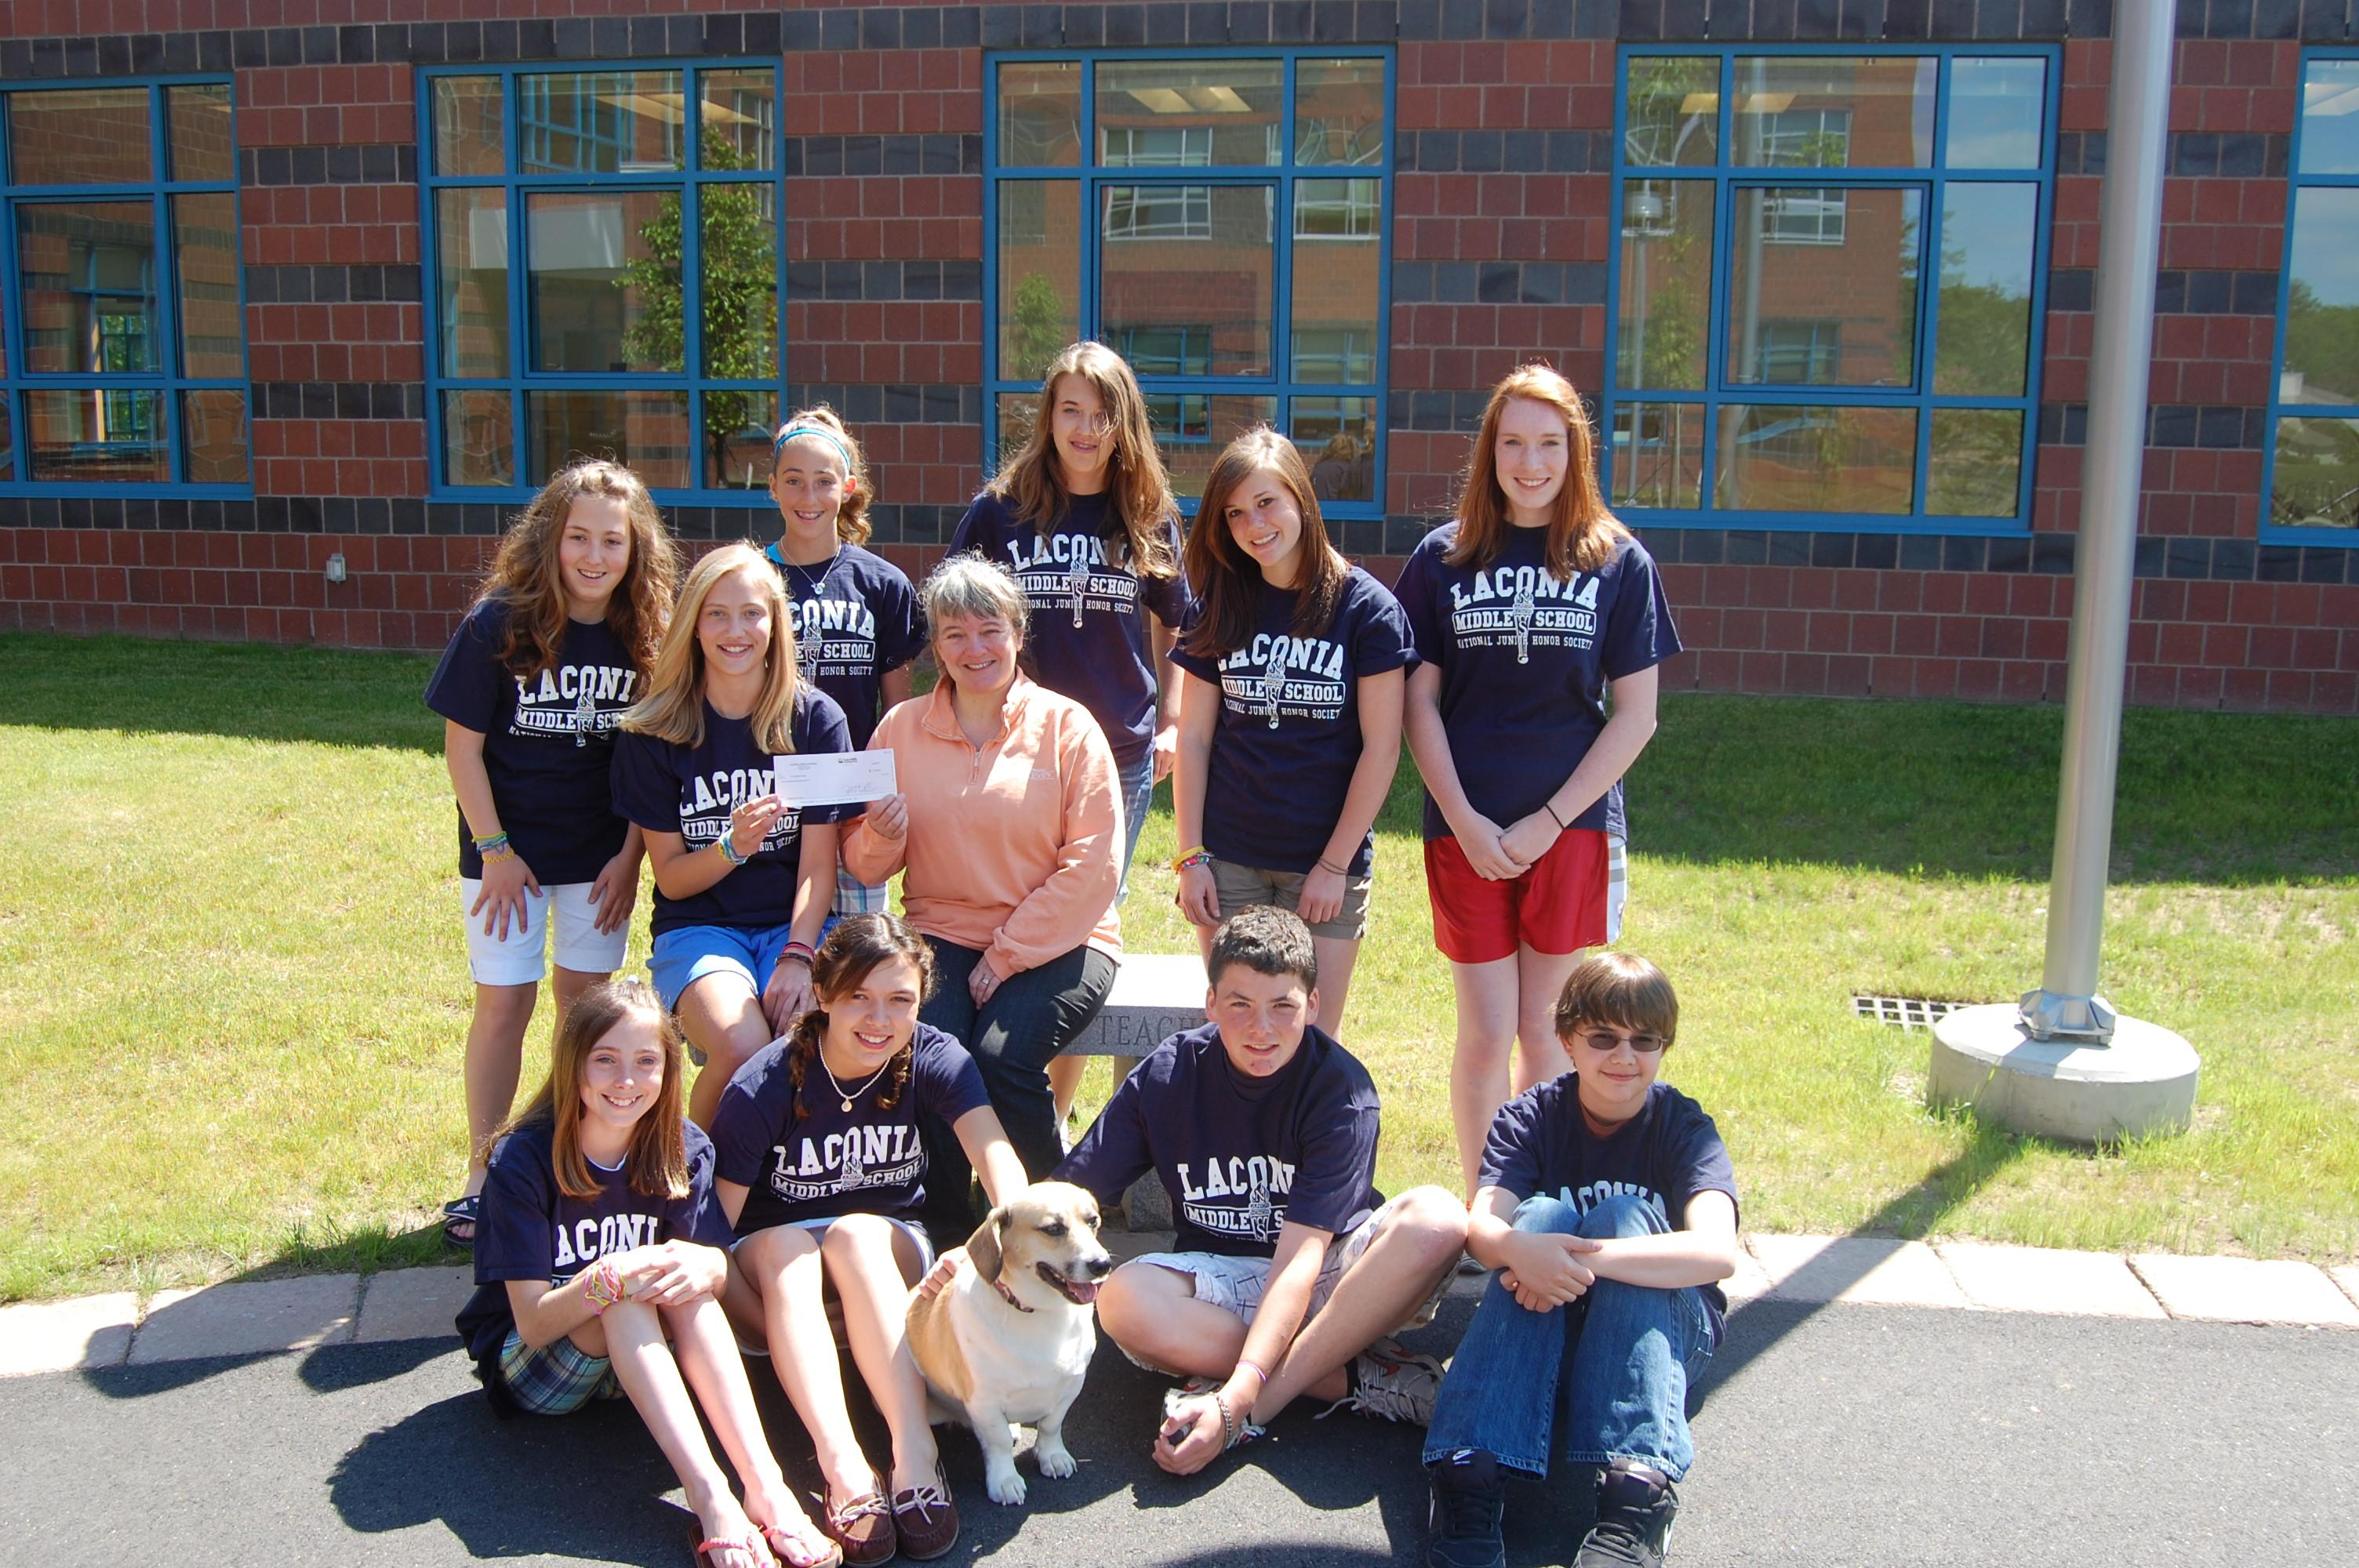 laconia-middle-school-student-1k-may-21-2010